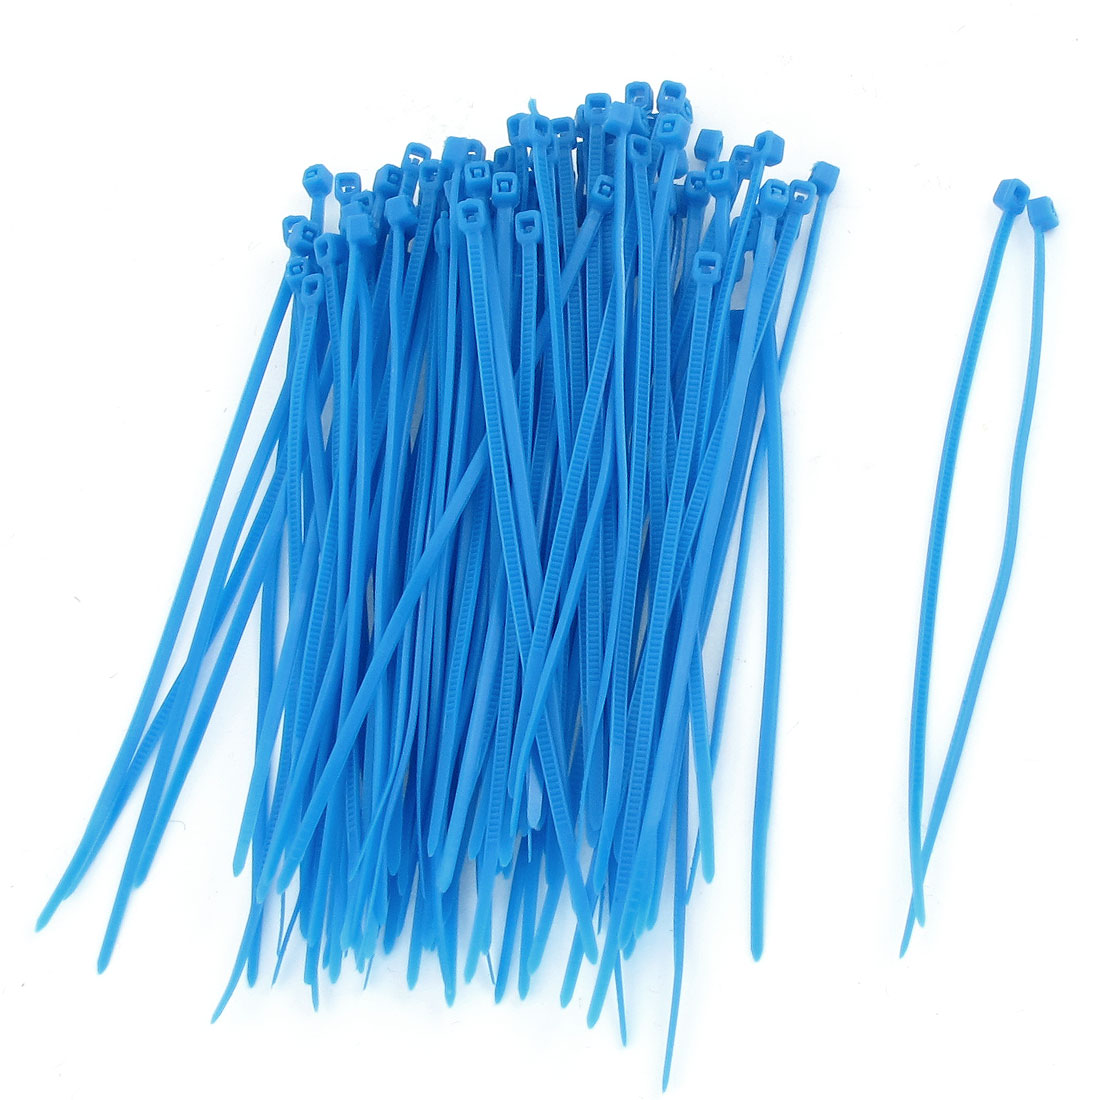 Blue Plastic 100 x 3mm Locking Electric Wire Cable Zip Ties 100 Pcs